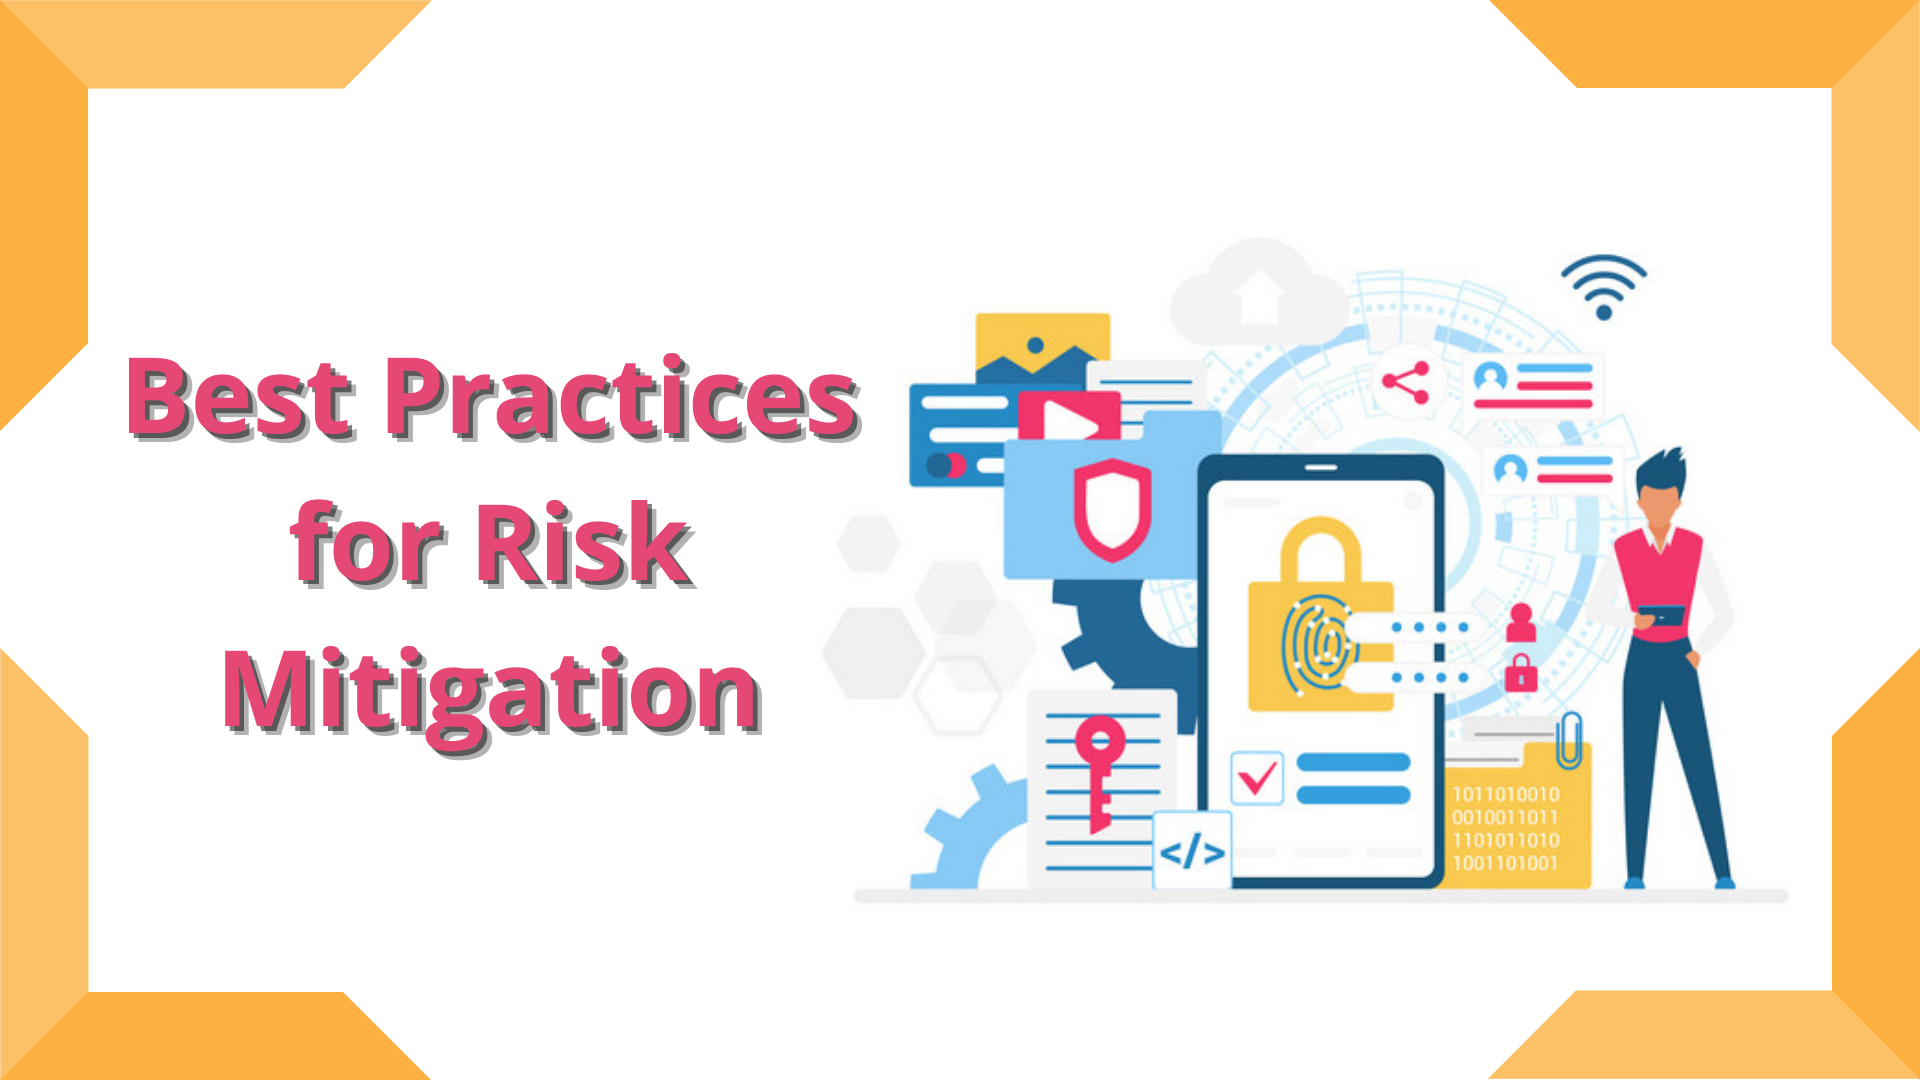 Best Practices for Risk Mitigation